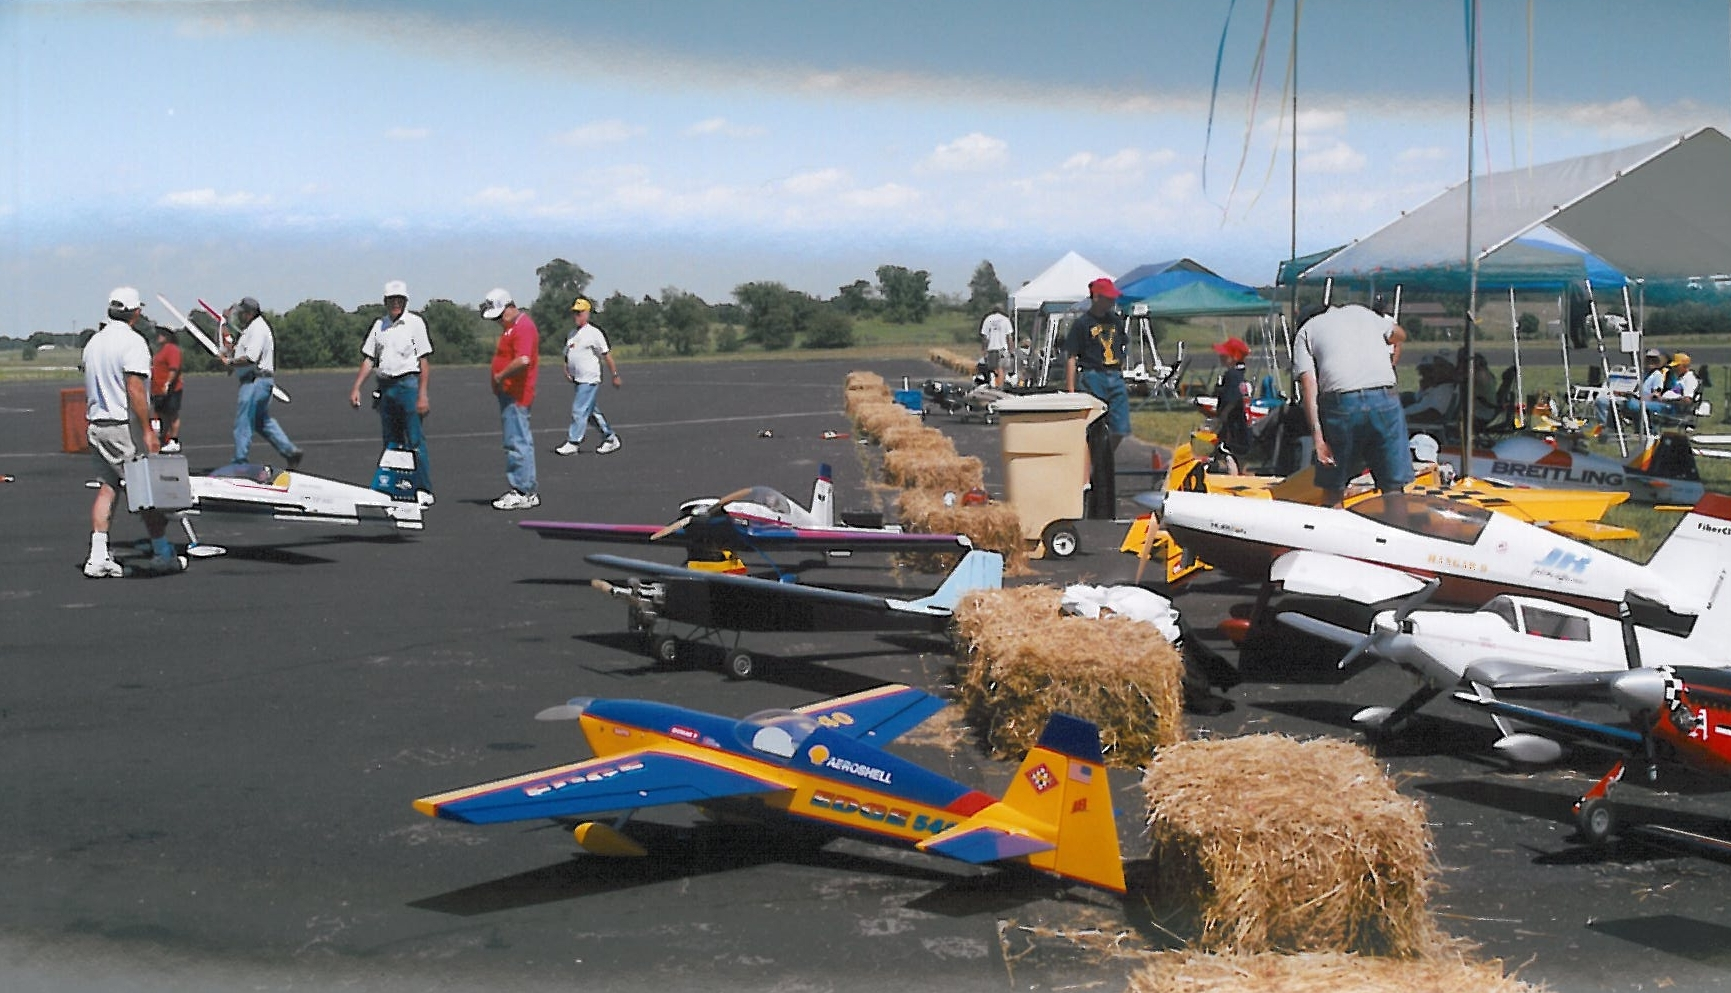 Radio Control model airplane flying on-site, Grand Event, July 9, 2001. (Source: National Model Aviation Museum Archives, AMA Collection #0001, Photo Credit: AMA staff.)